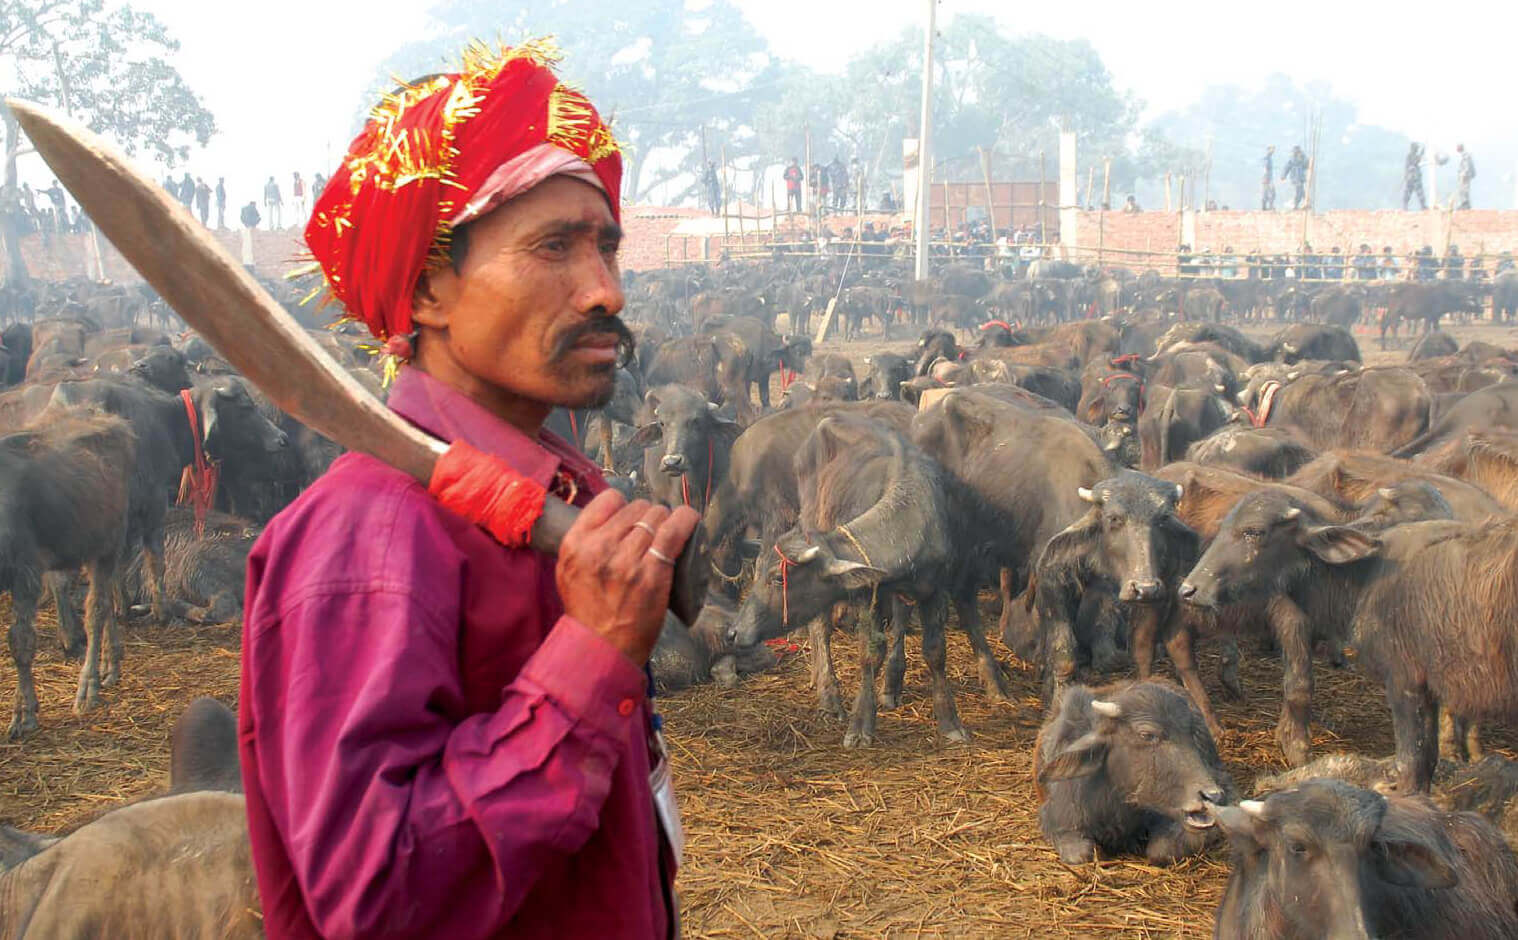 Activists decry animal slaughter at Nepal temple